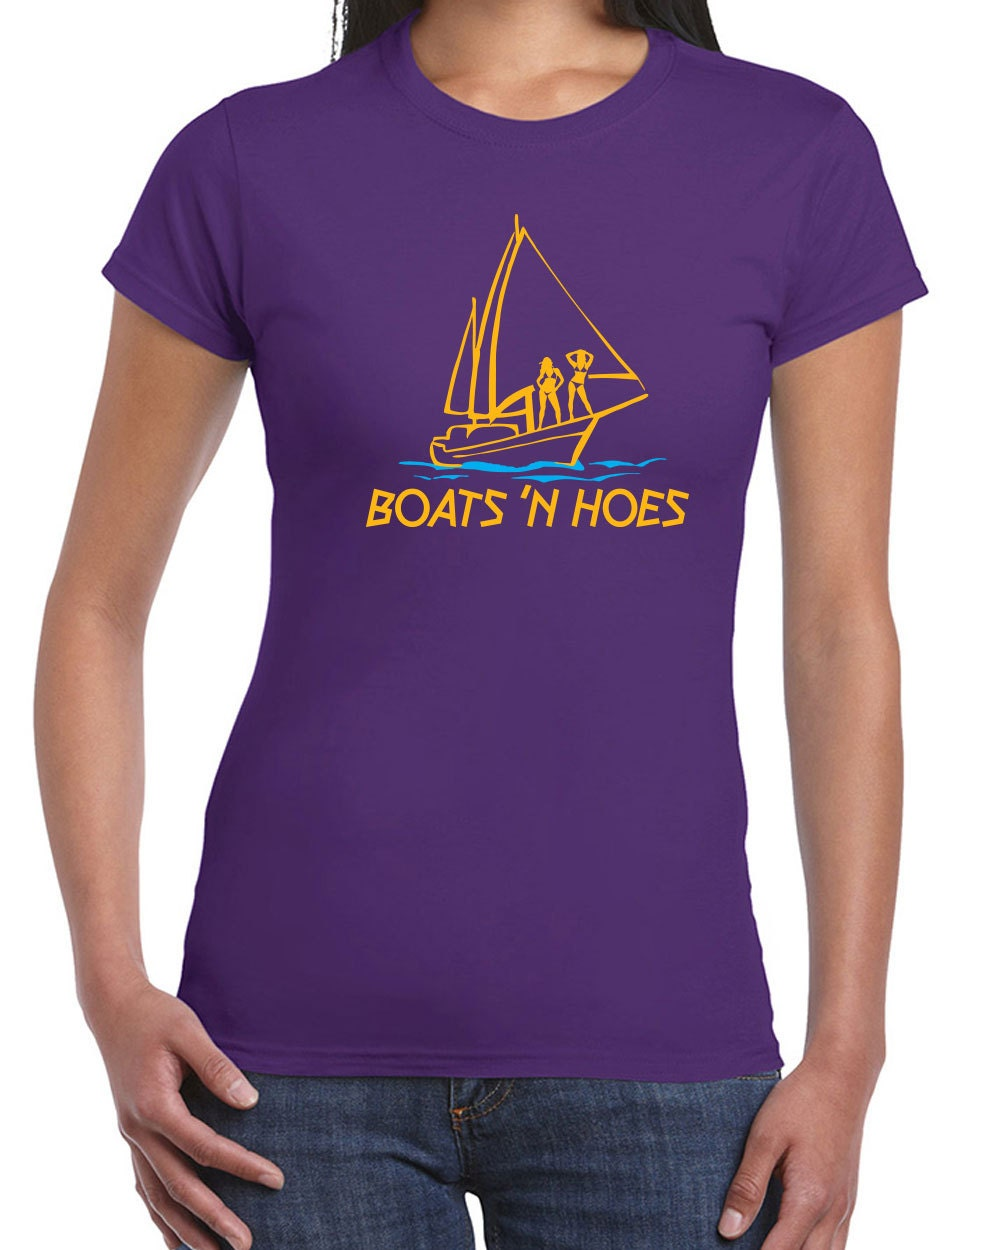 Boats 'N Hoes Lyrics by Will Ferrell and John C. Reilly ...